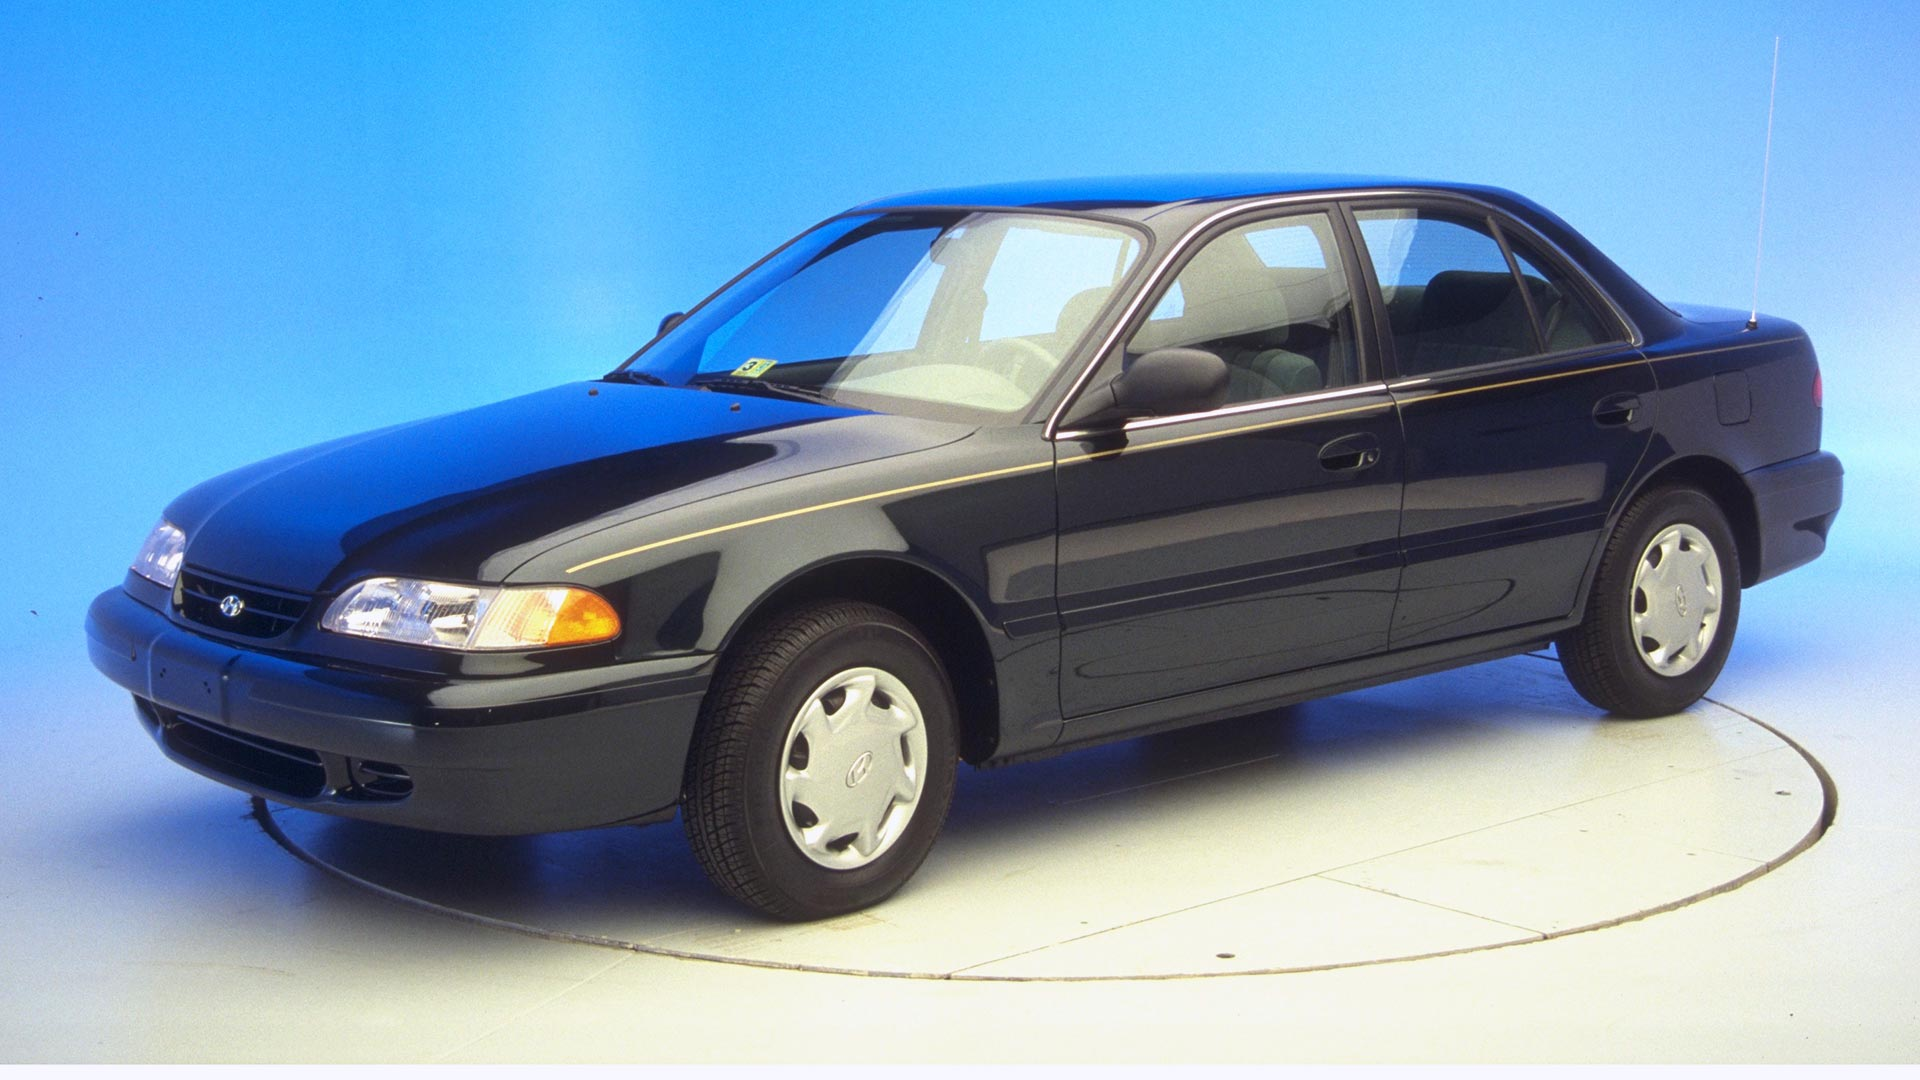 1998 Hyundai Sonata 4-door sedan